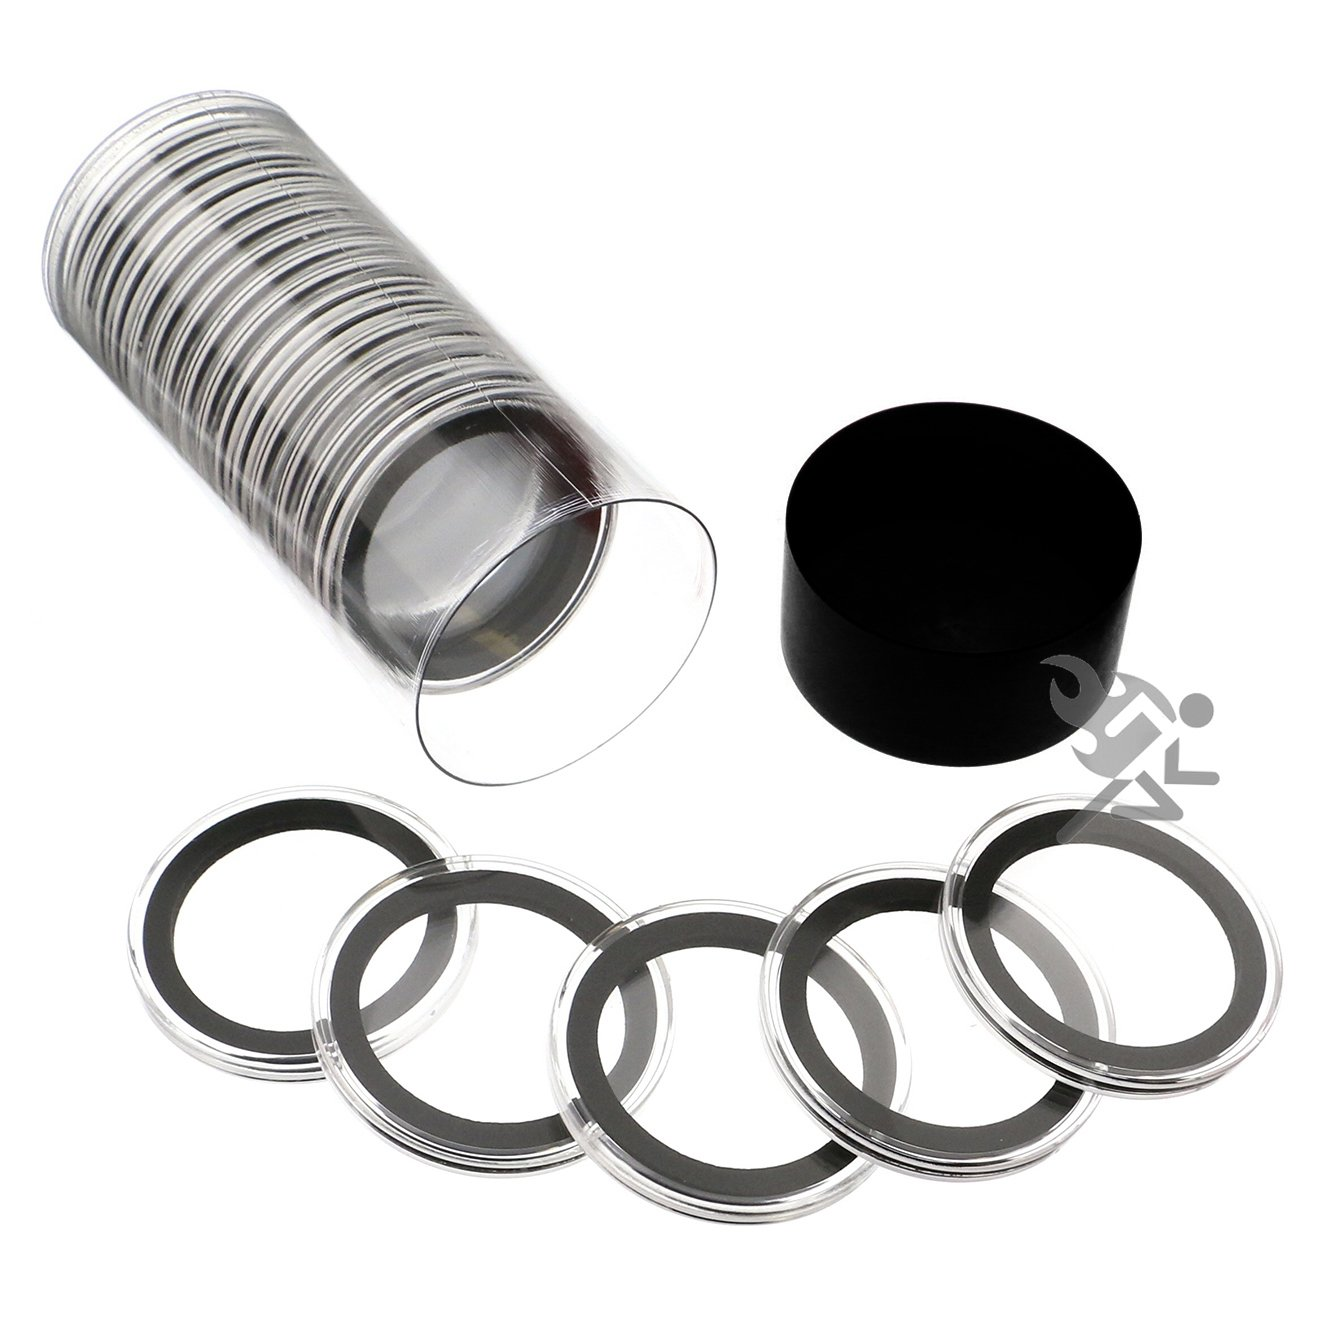 Black Lid Capsule Tube & 20 Air-Tite 38mm Black Ring Coin Holders for 1oz Silver Dollars